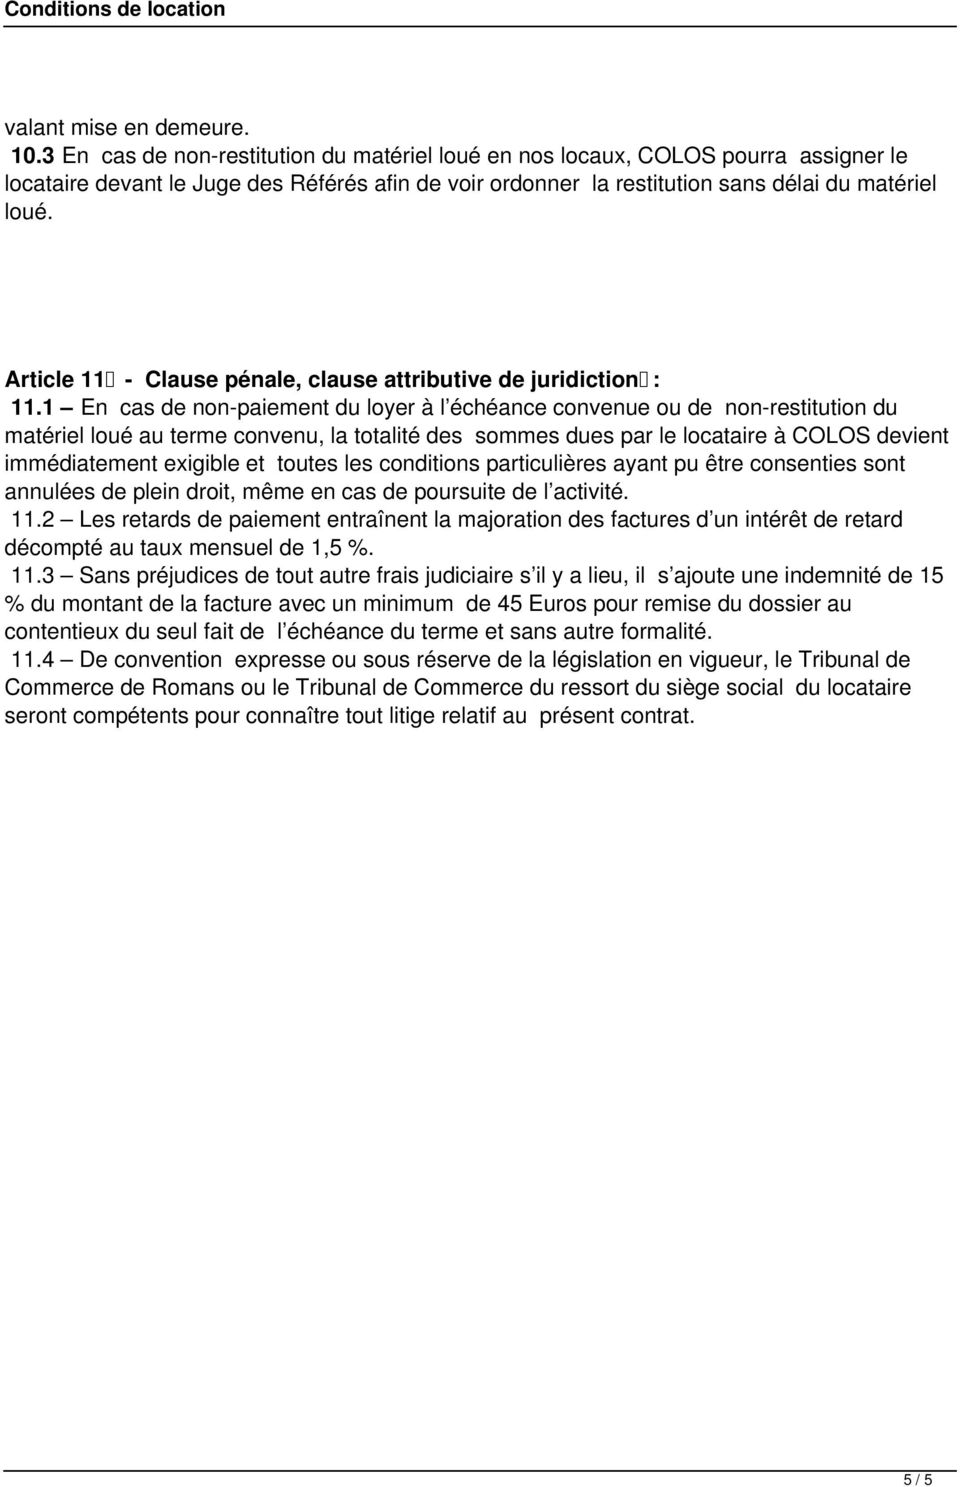 Article 11 - Clause pénale, clause attributive de juridiction : 11.